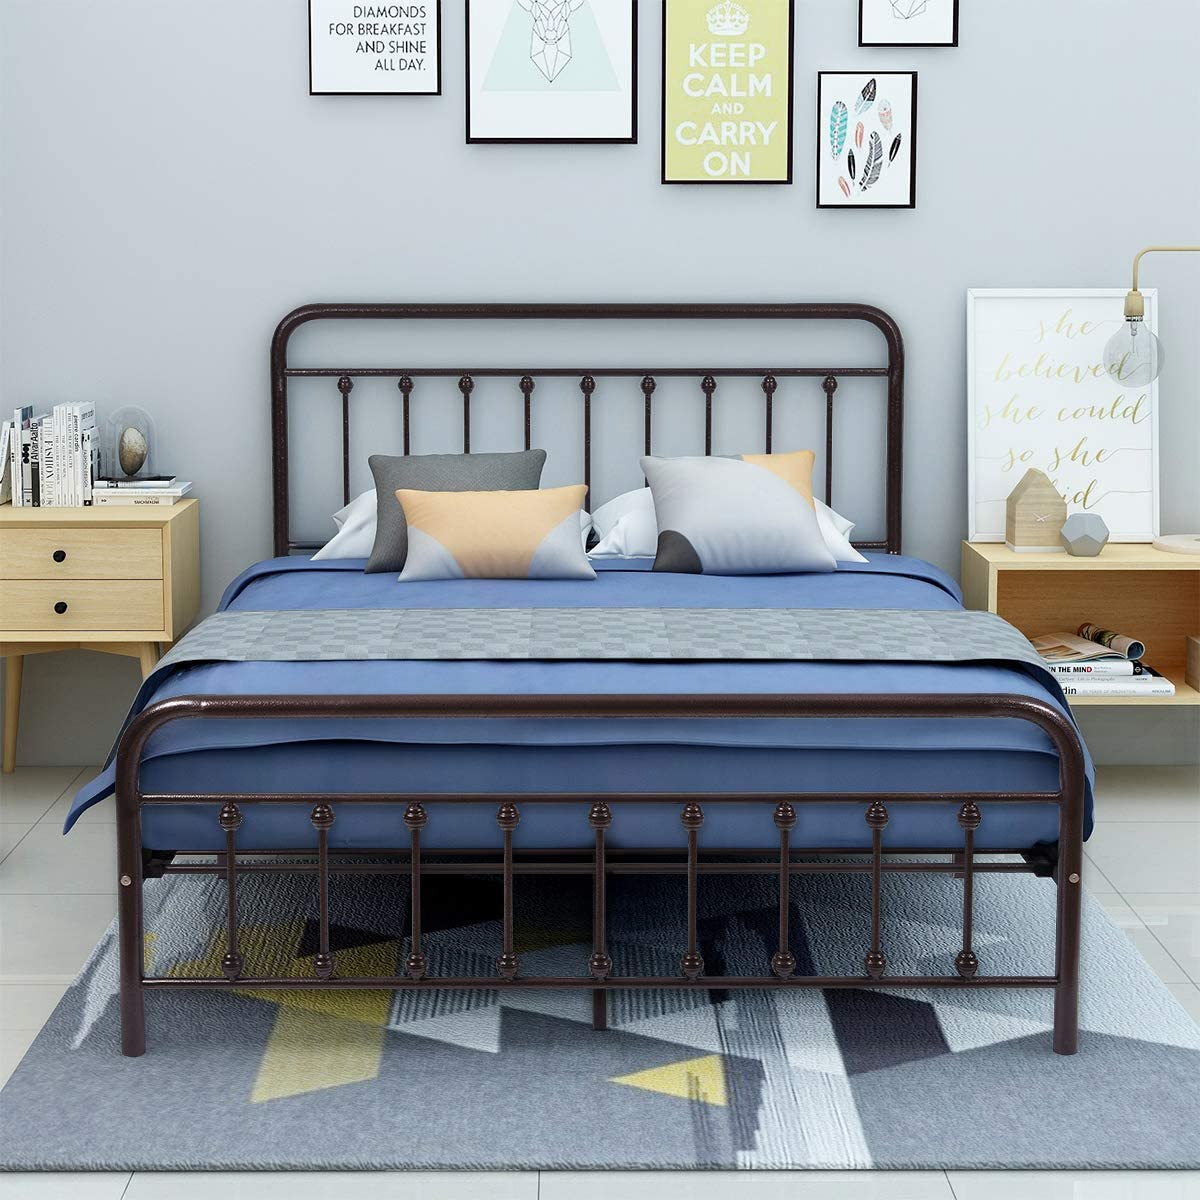 AUFANK Metal Bed Frame Queen Size Victorian Vintage Style Headboard and Footboard No Box Spring Heavy Duty Steel Slat Mattress Foundation Bronze